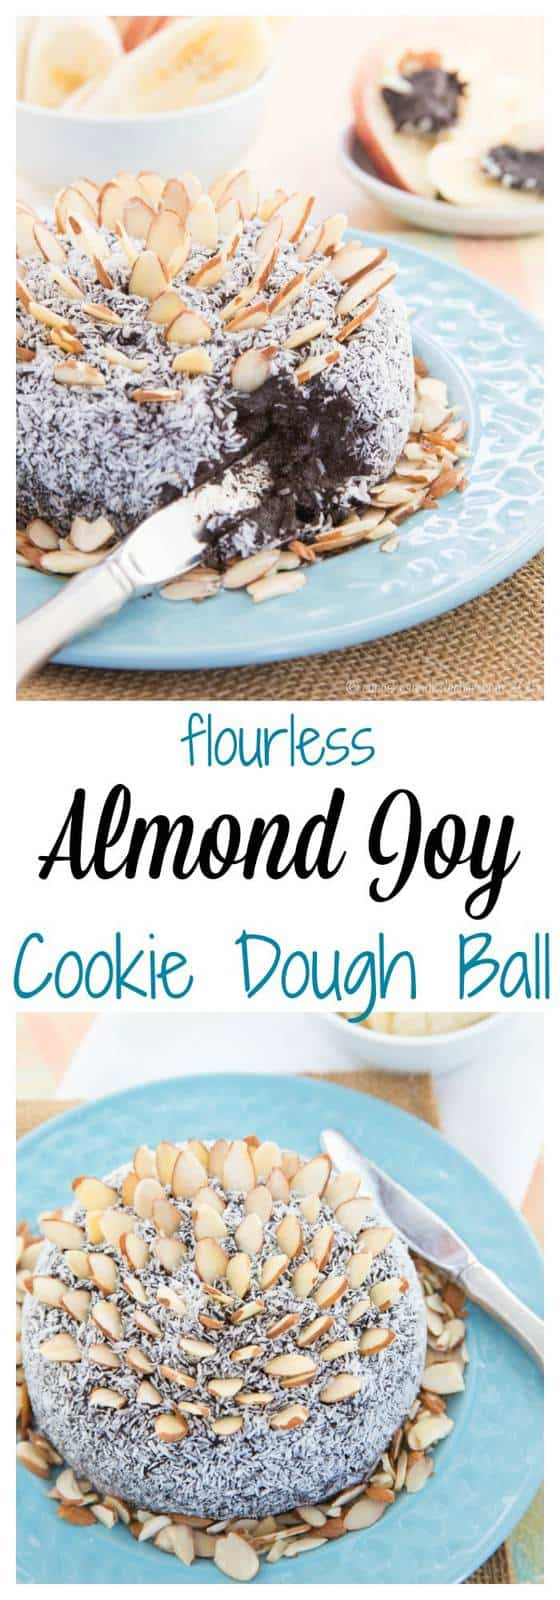 Flourless Almond Joy Cookie Dough Ball has the classic combination of chocolate, coconut, and almonds in a decadent dessert dip that's secretly healthy! | cupcakesandkalechips.com | gluten free, vegan